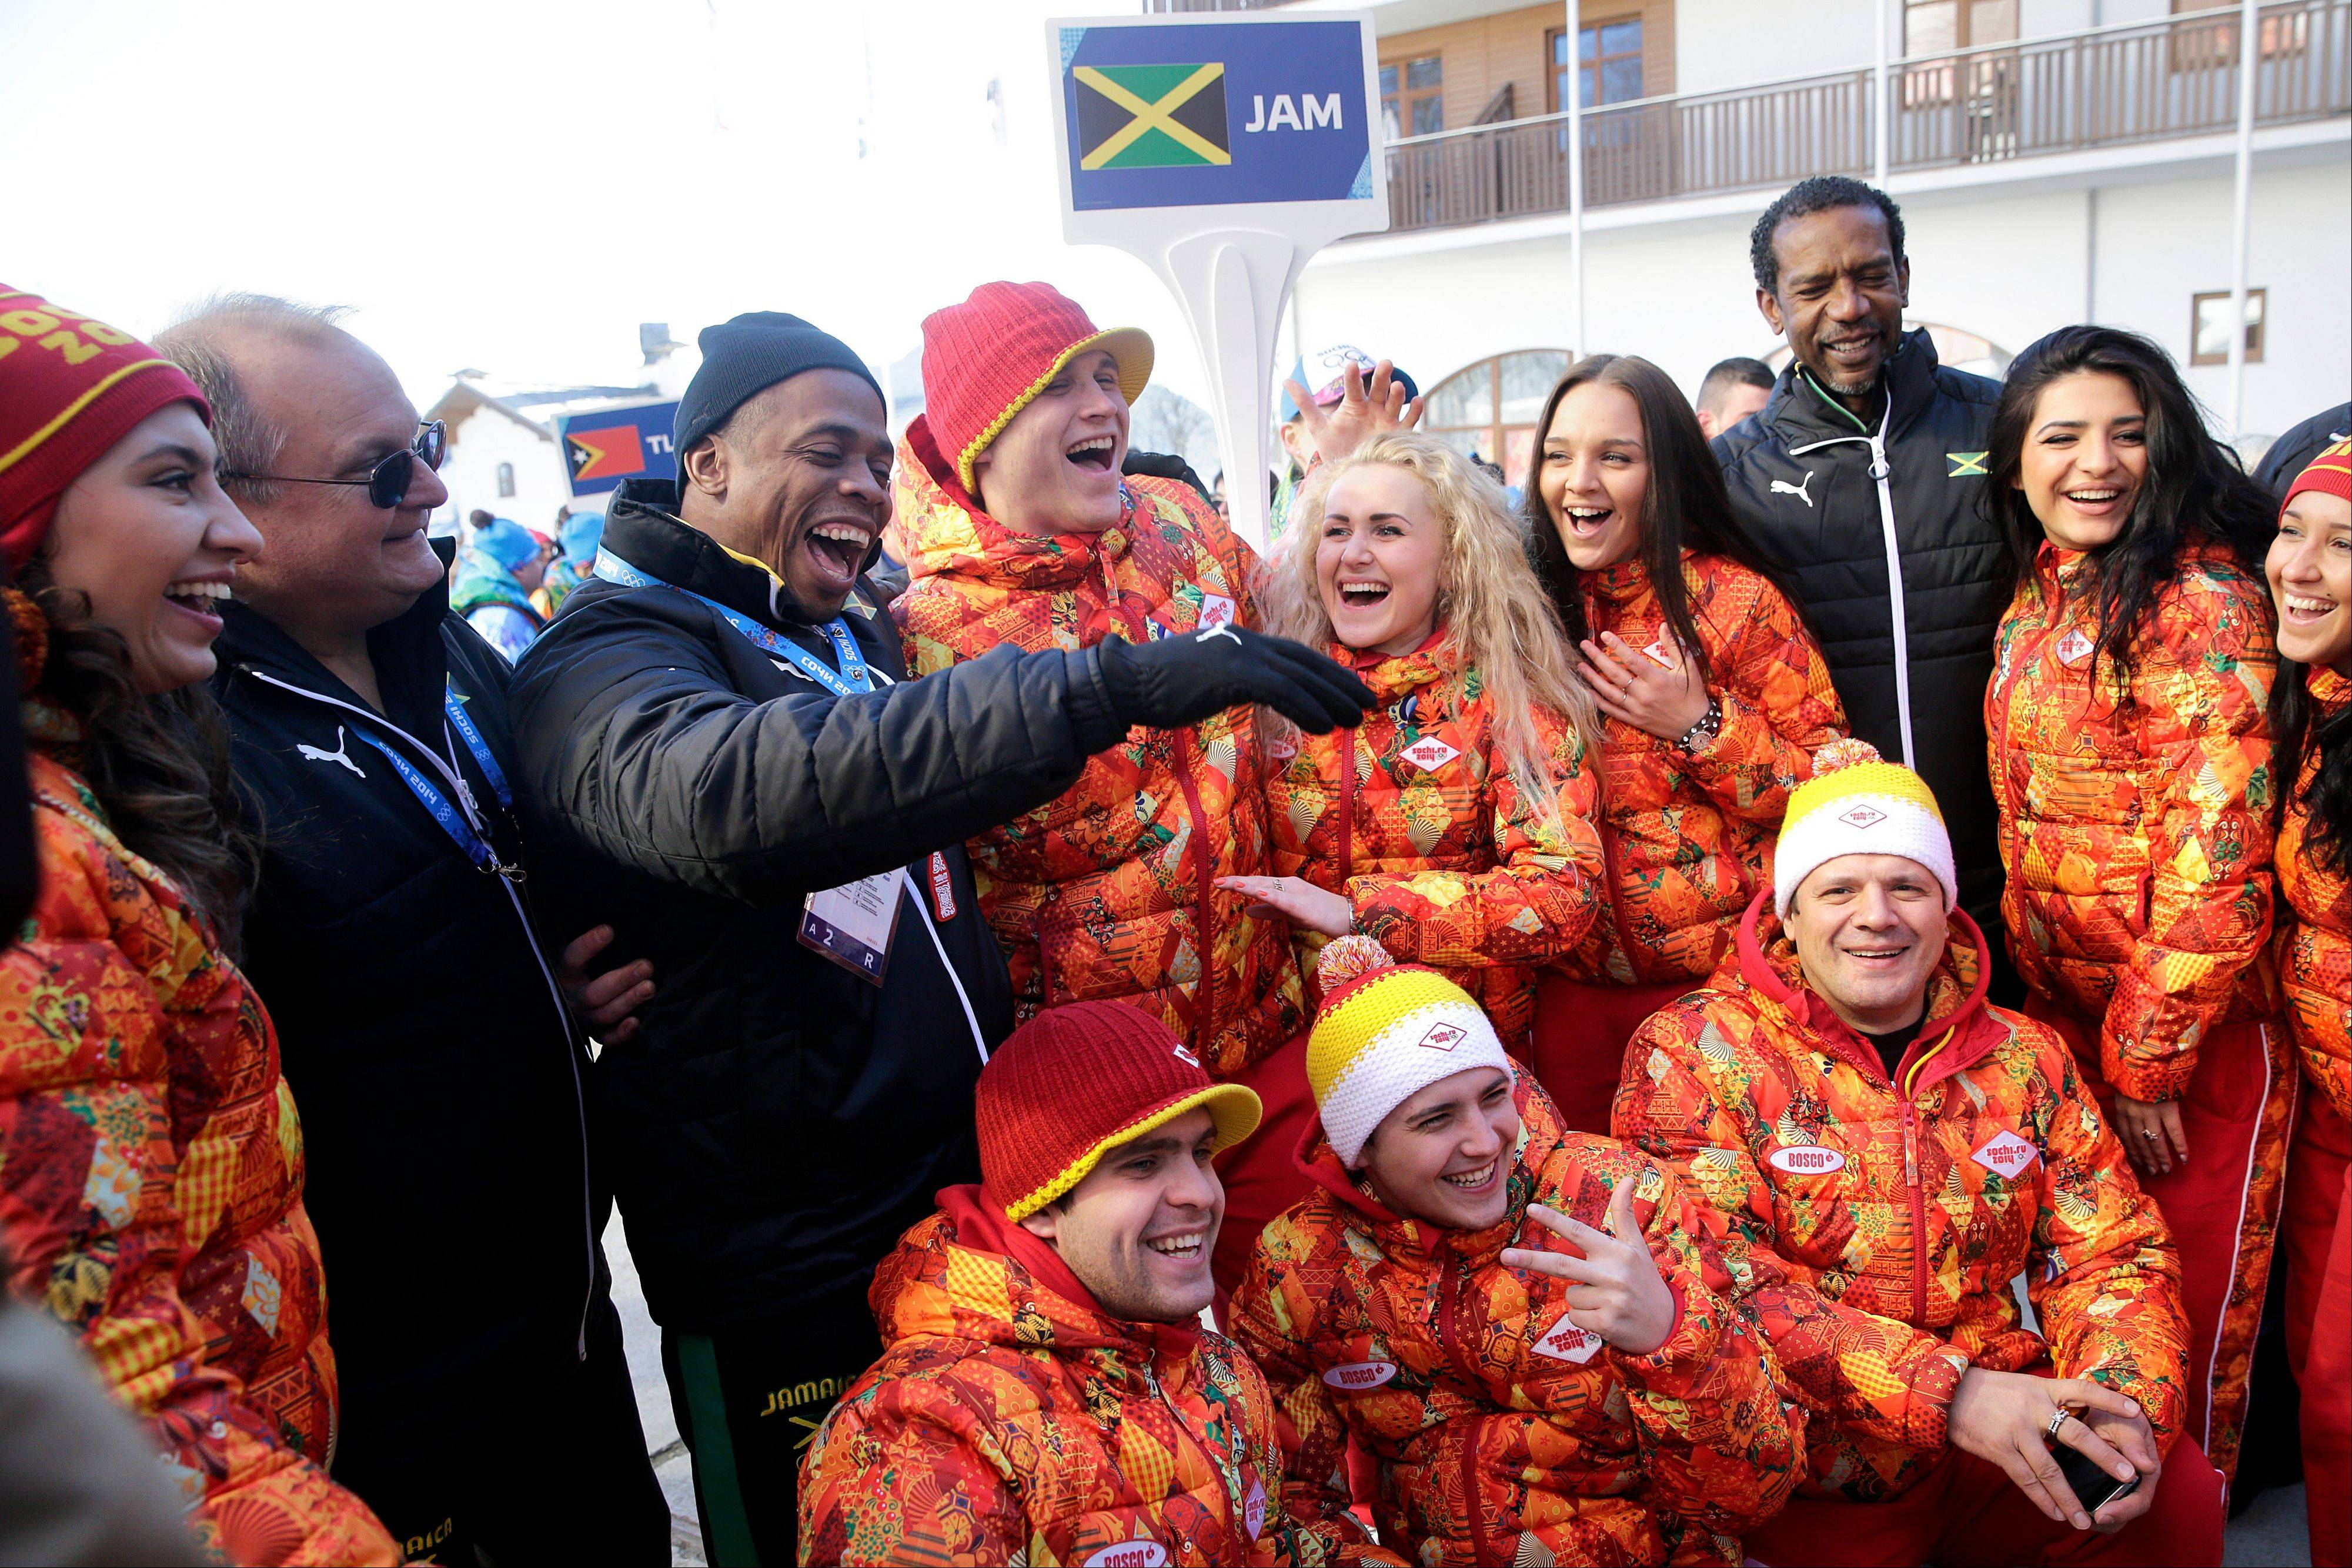 Members of Jamaican Olympic team, including bobsled brakeman Marvin Dixon, third from left, and coach Paul Skog, second from left, pose Thursday with the Choir of Siberia after a welcome ceremony at the Mountain Olympic Village prior to the 2014 Winter Olympics.